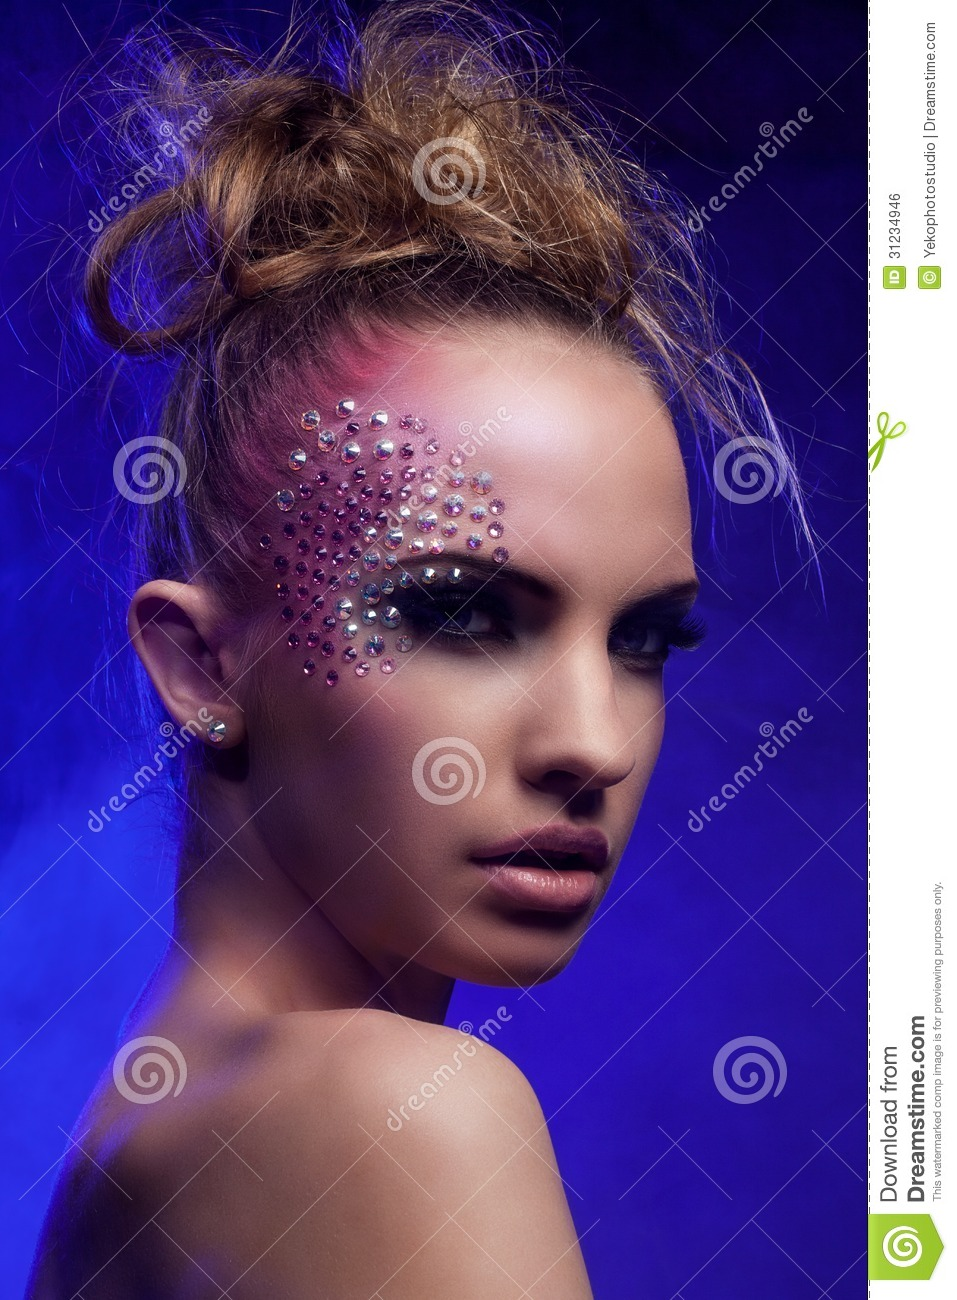 ... Woman With Fantasy Makeup Royalty Free Stock Image - Image: 31234946